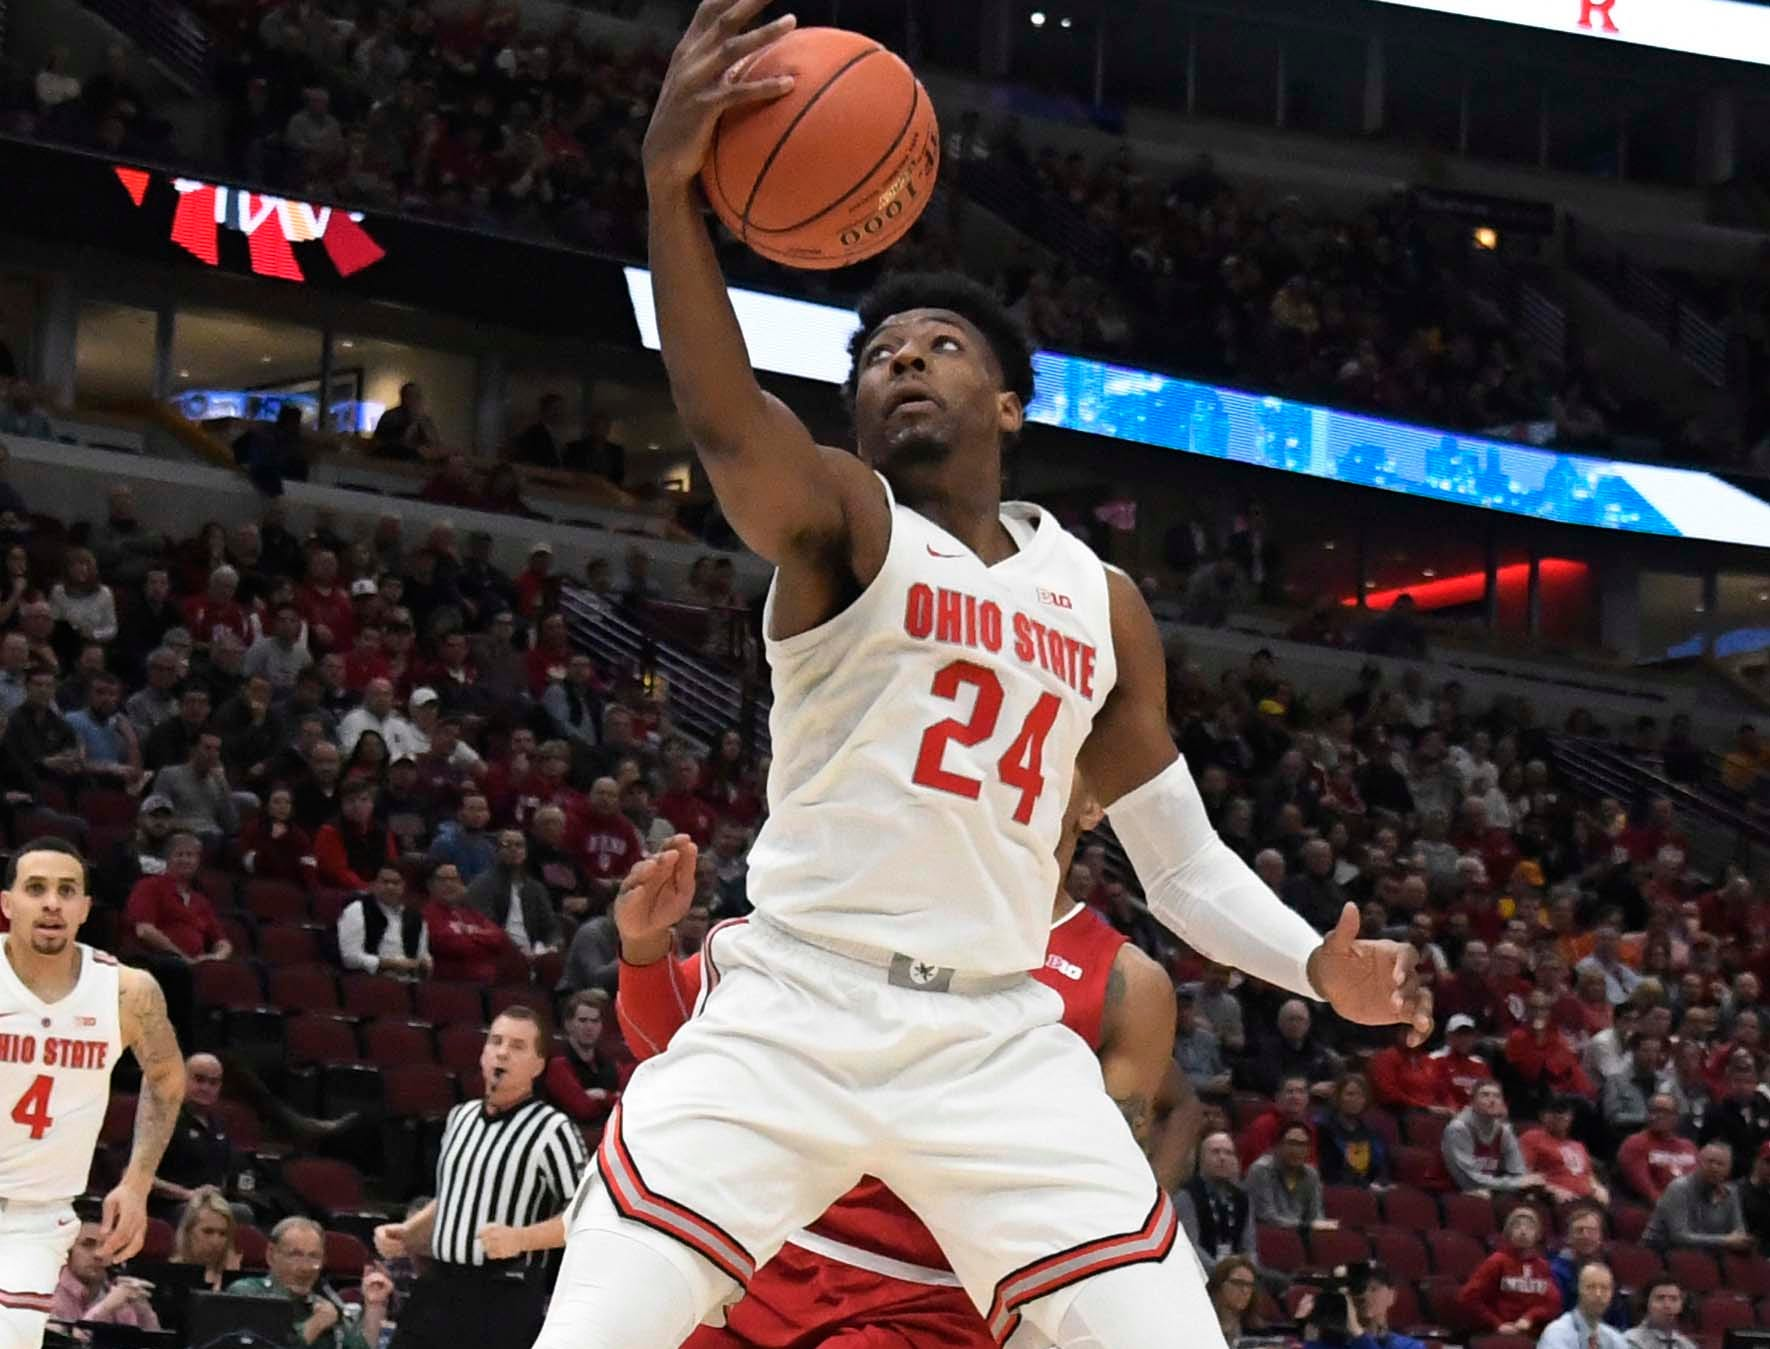 Mar 14, 2019; Chicago, IL, USA; Ohio State Buckeyes forward Andre Wesson (24) grabs a rebound against the Indiana Hoosiers during the first half in the Big Ten conference tournament at United Center. Mandatory Credit: David Banks-USA TODAY Sports